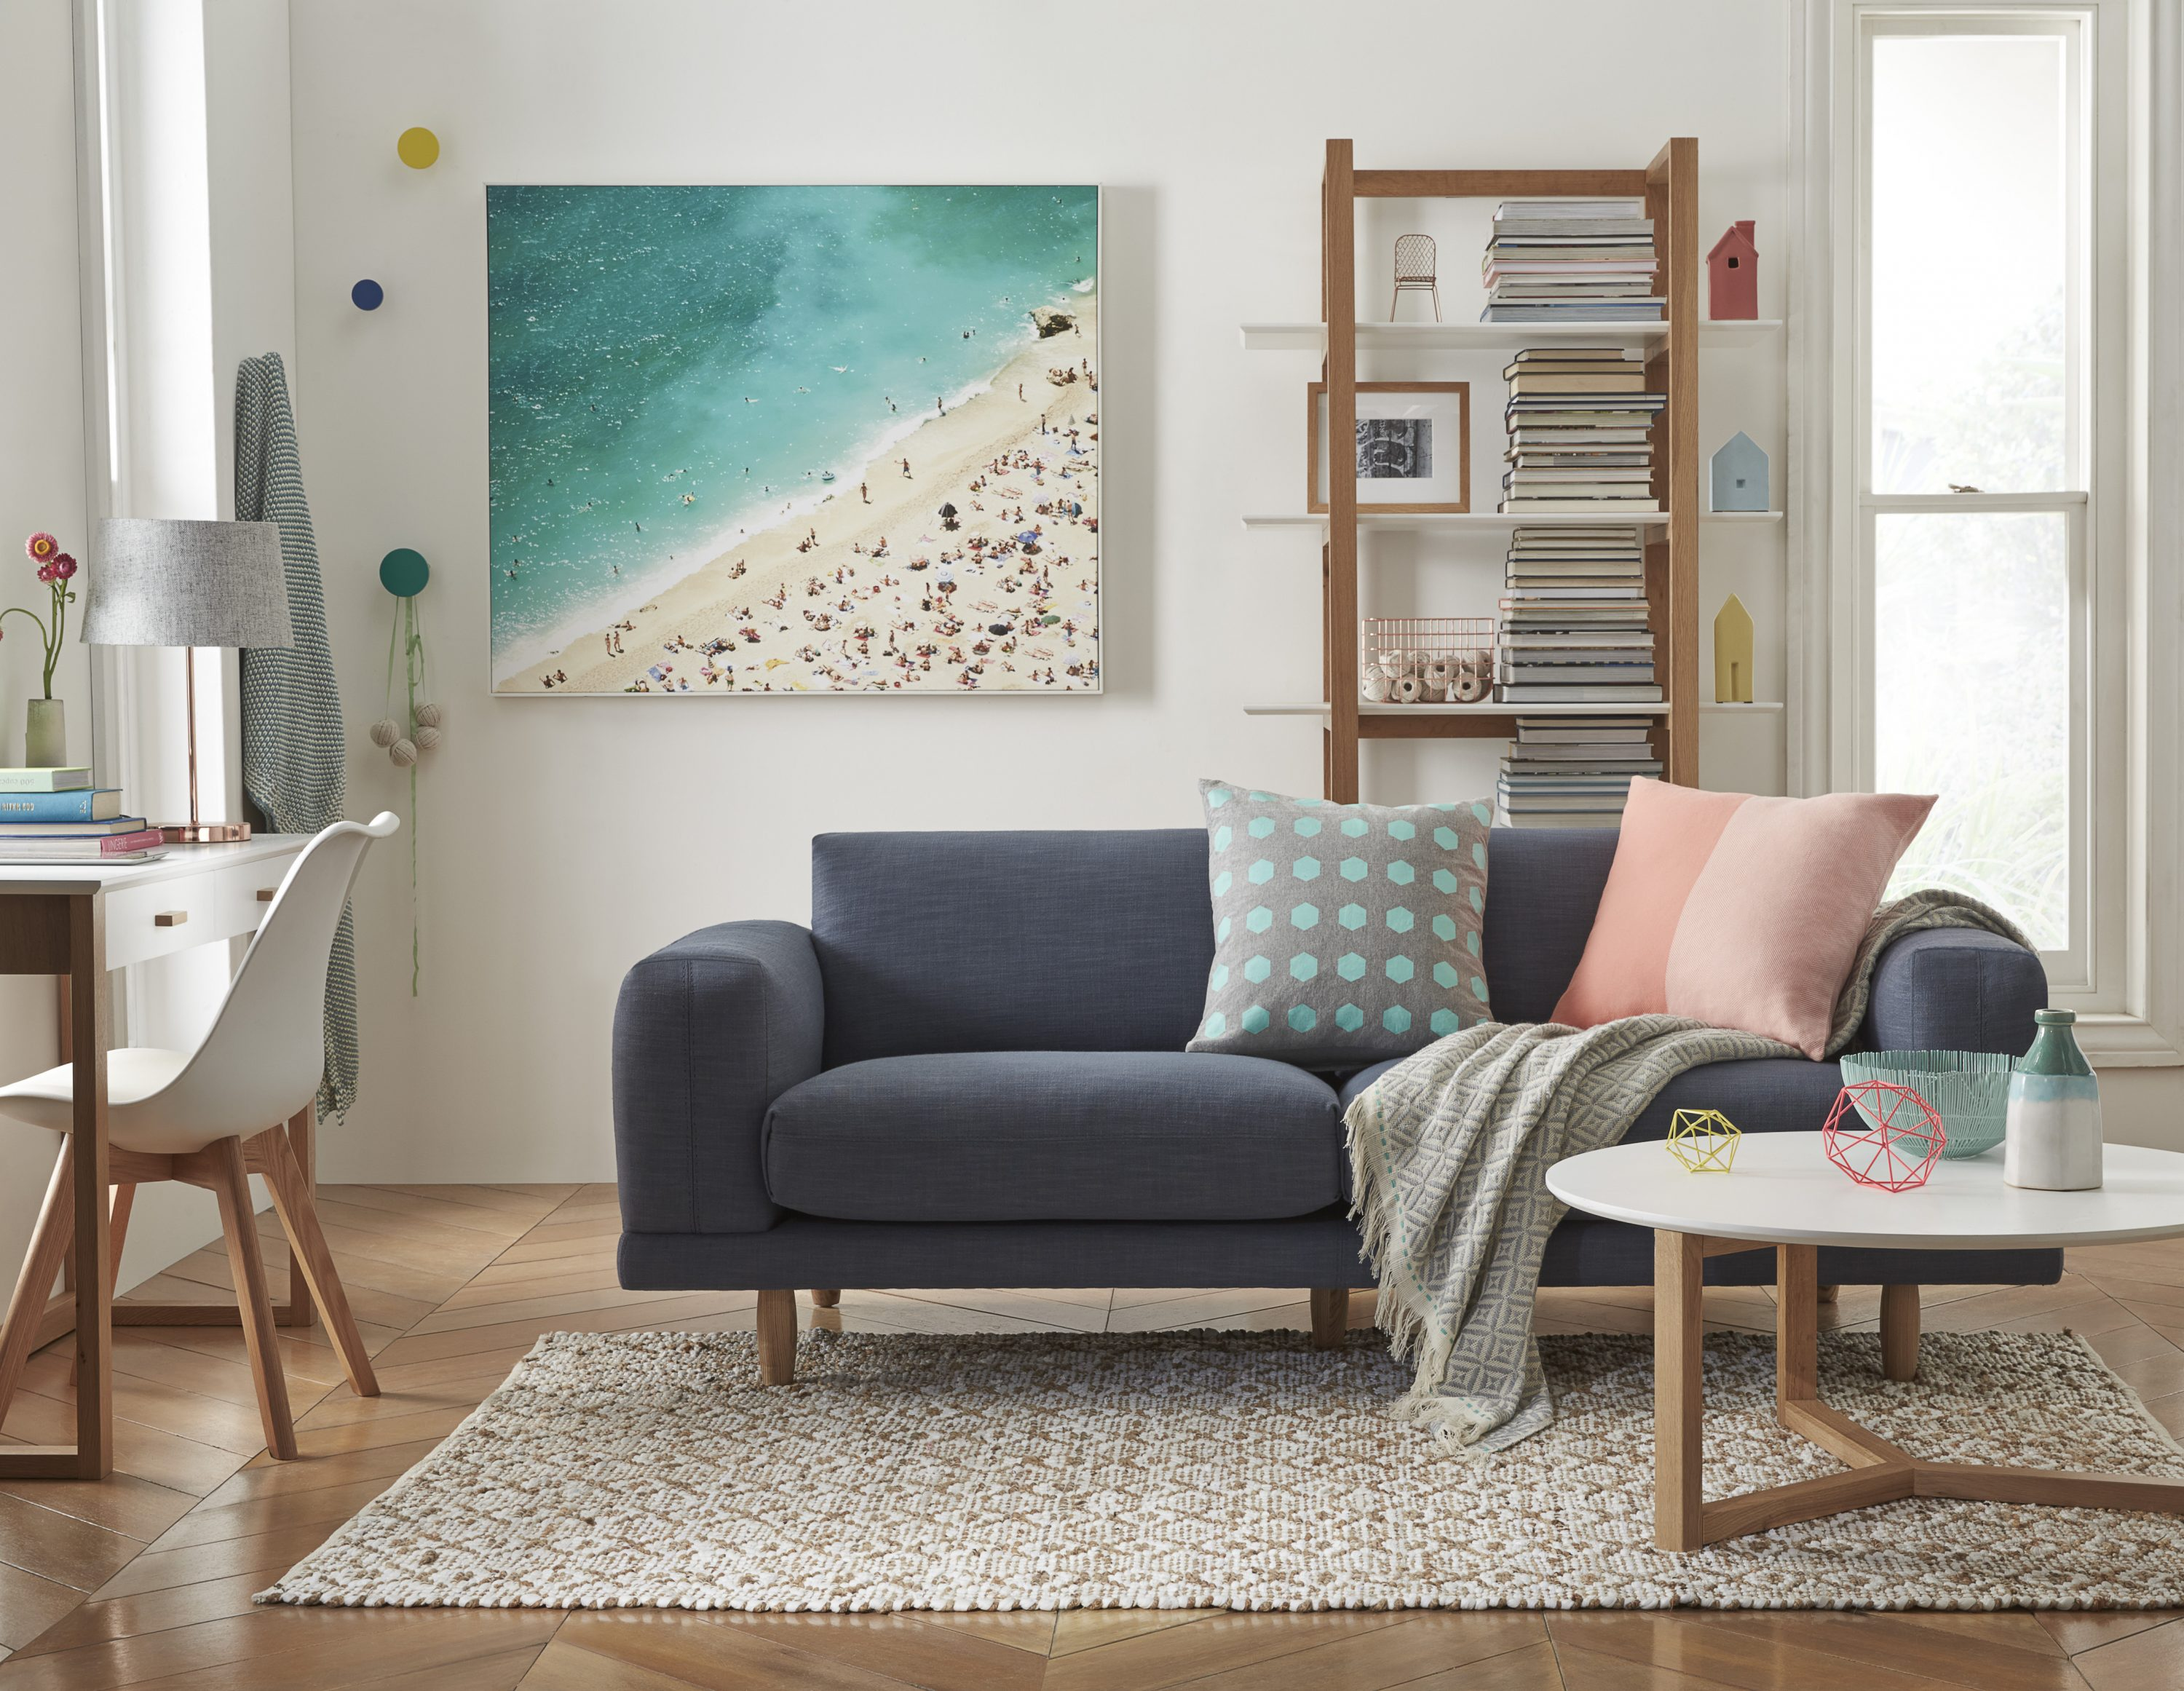 Freedom Retro Sofa Shaynna Blaze On The 5 Colour Trends To Use This Winter